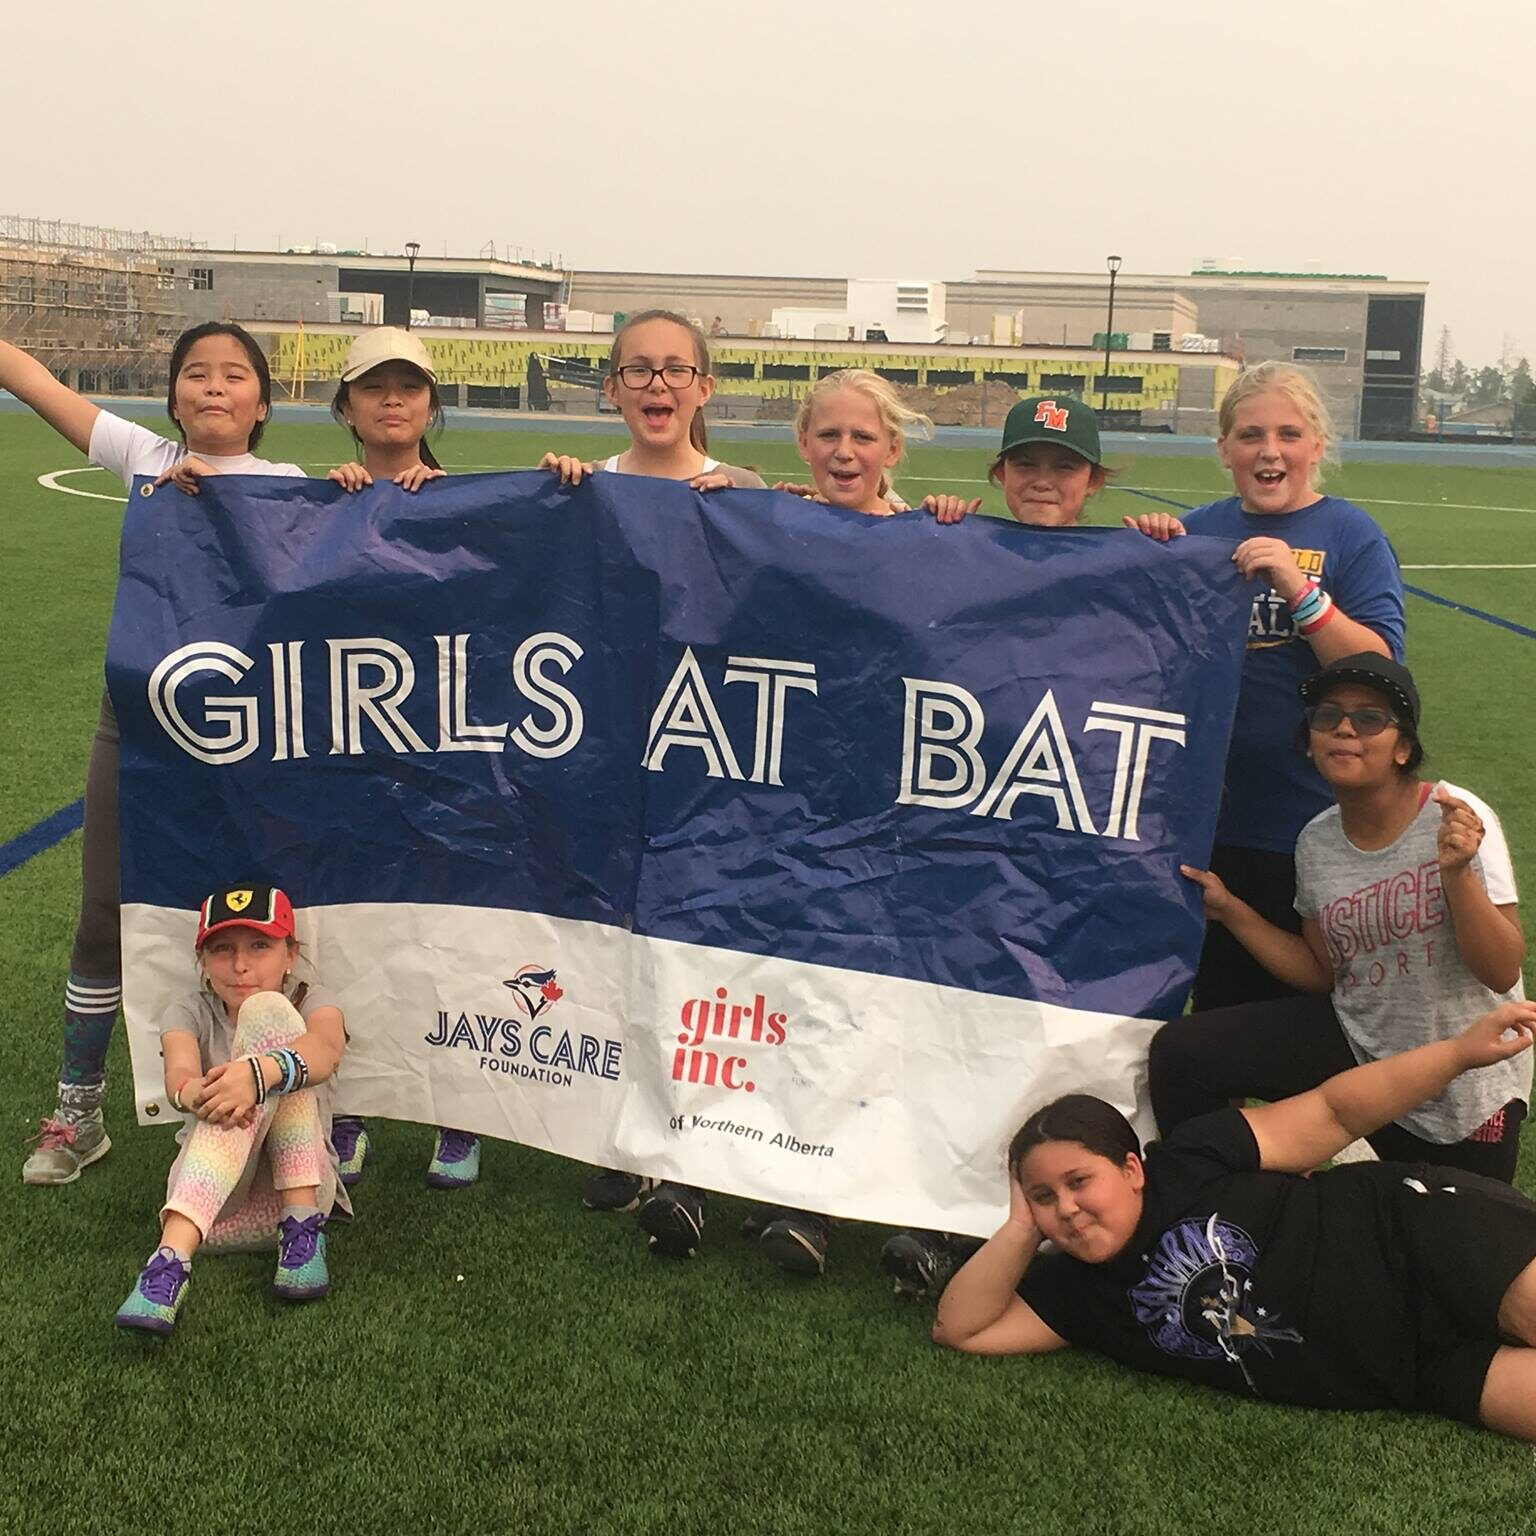 Girls Inc of Northern Alberta, Girls At Bat